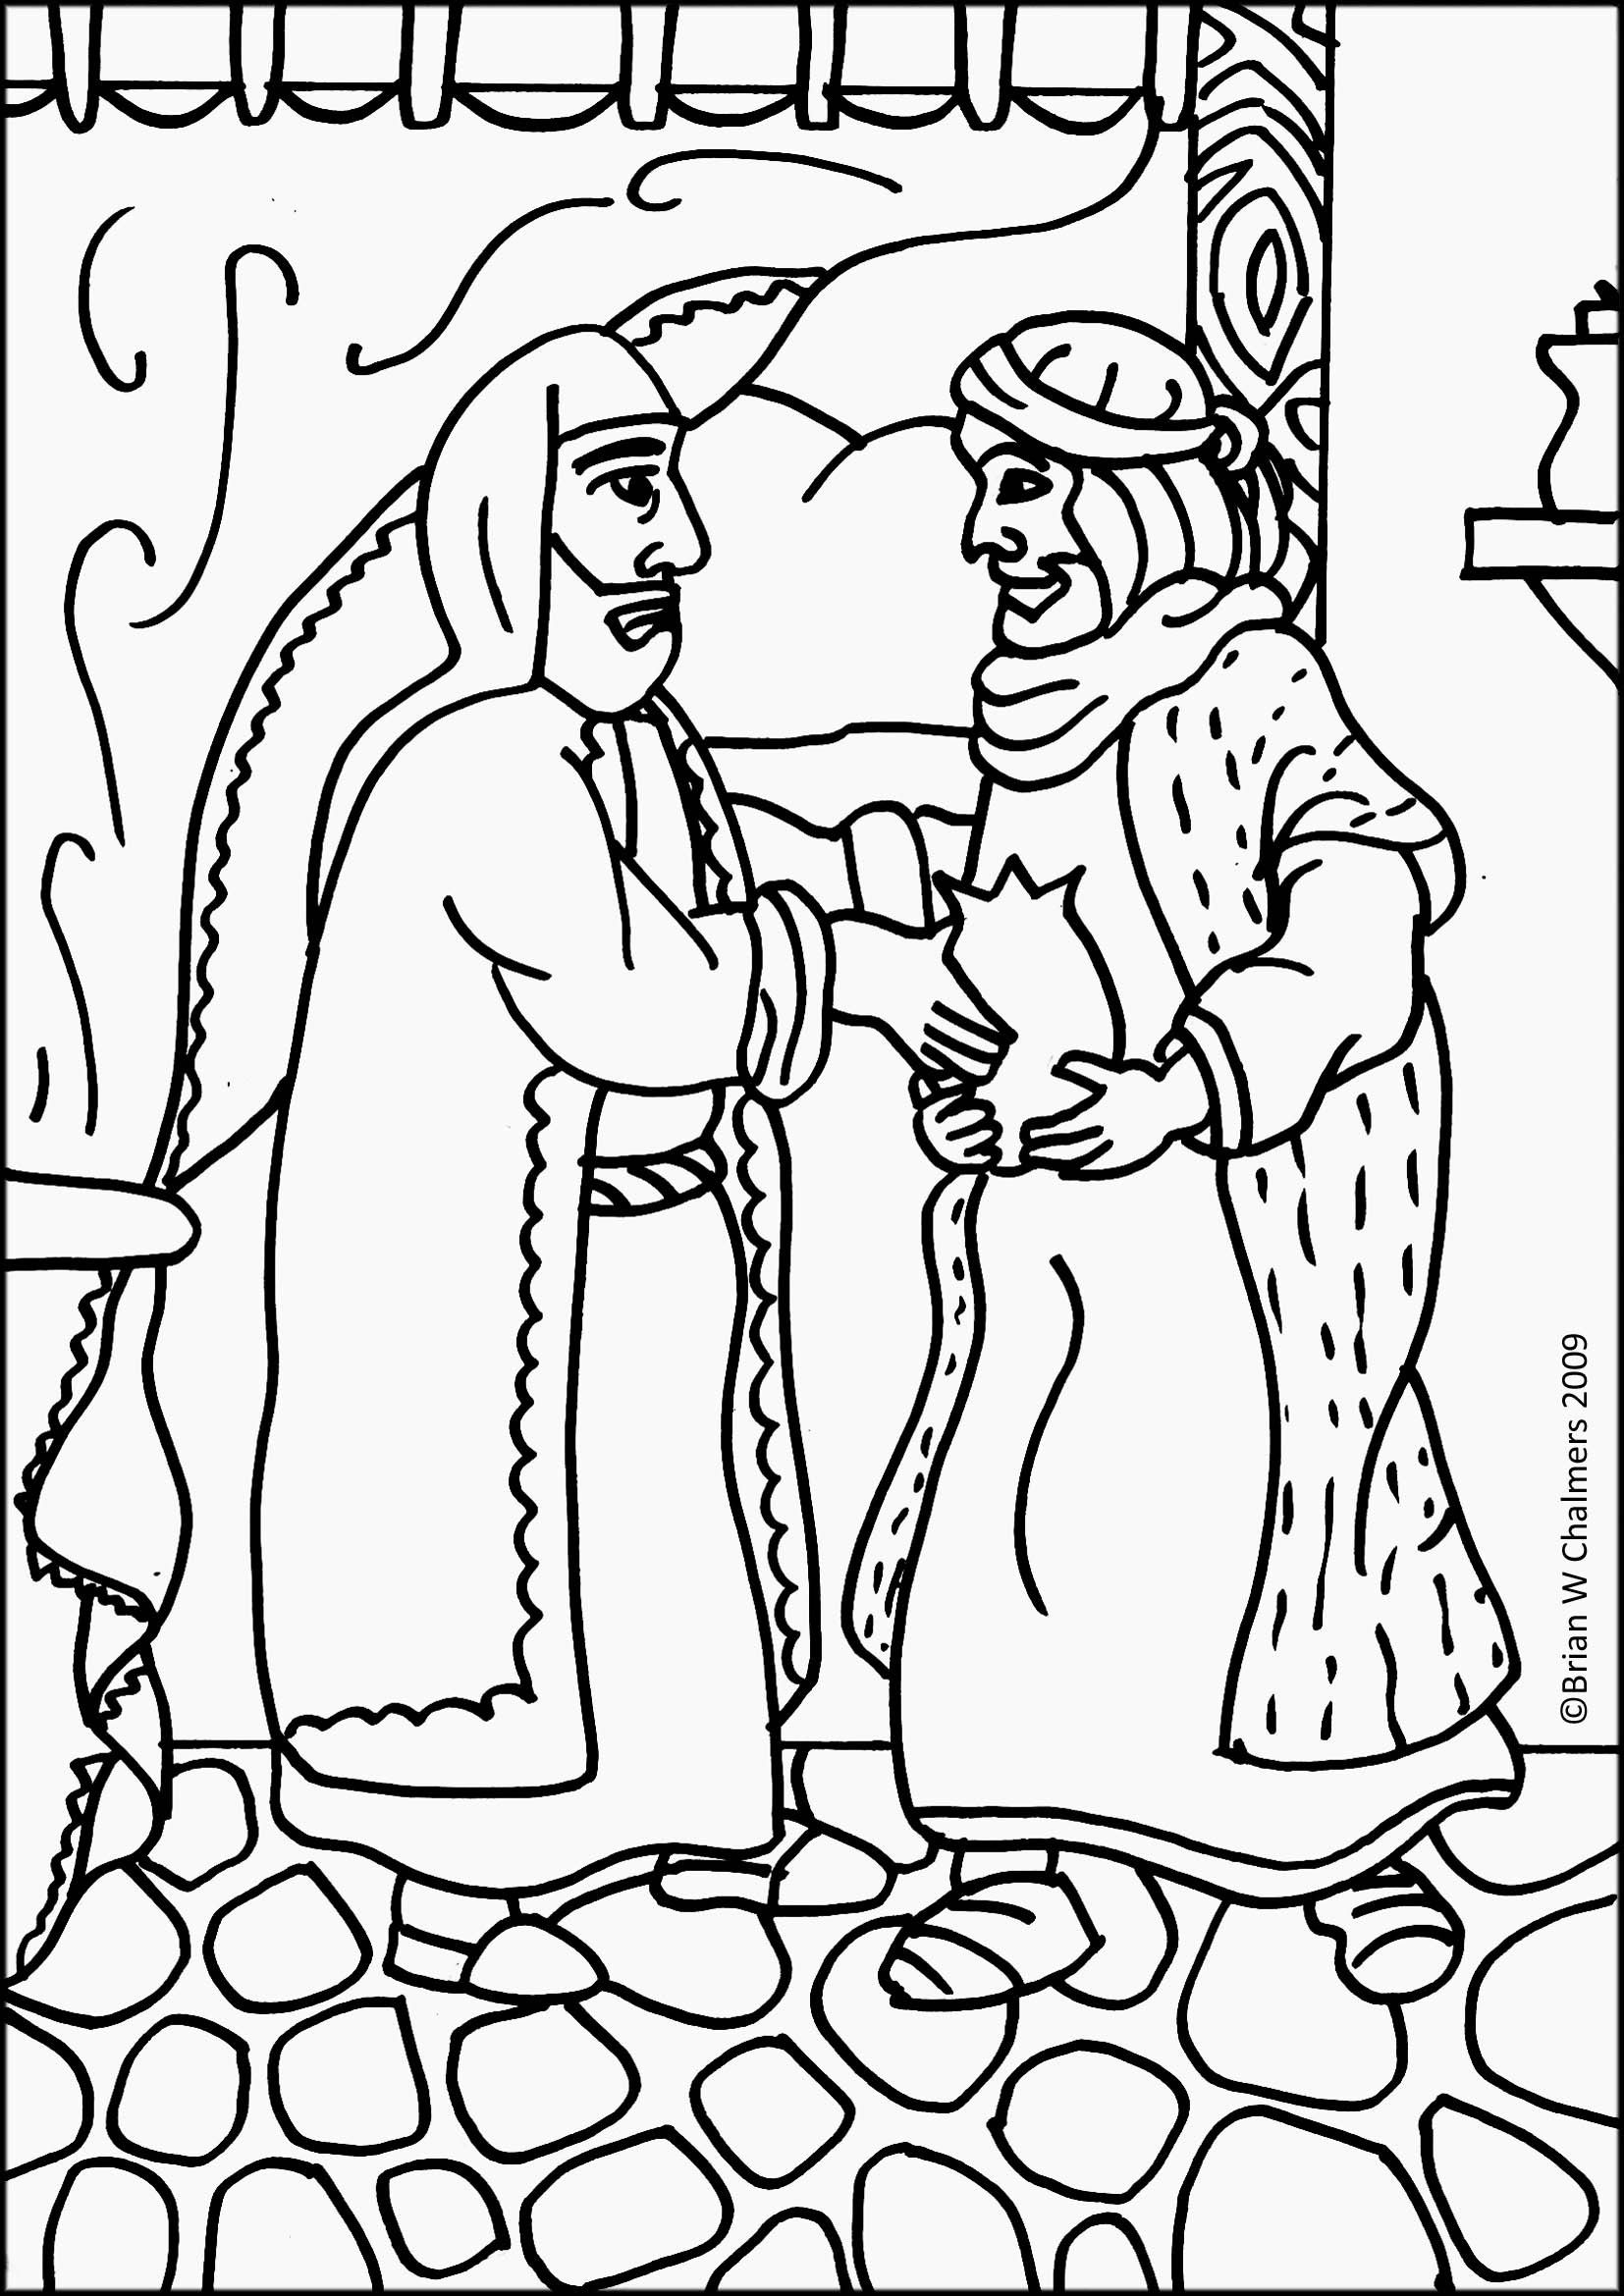 coloring pages luke 7 - photo#7